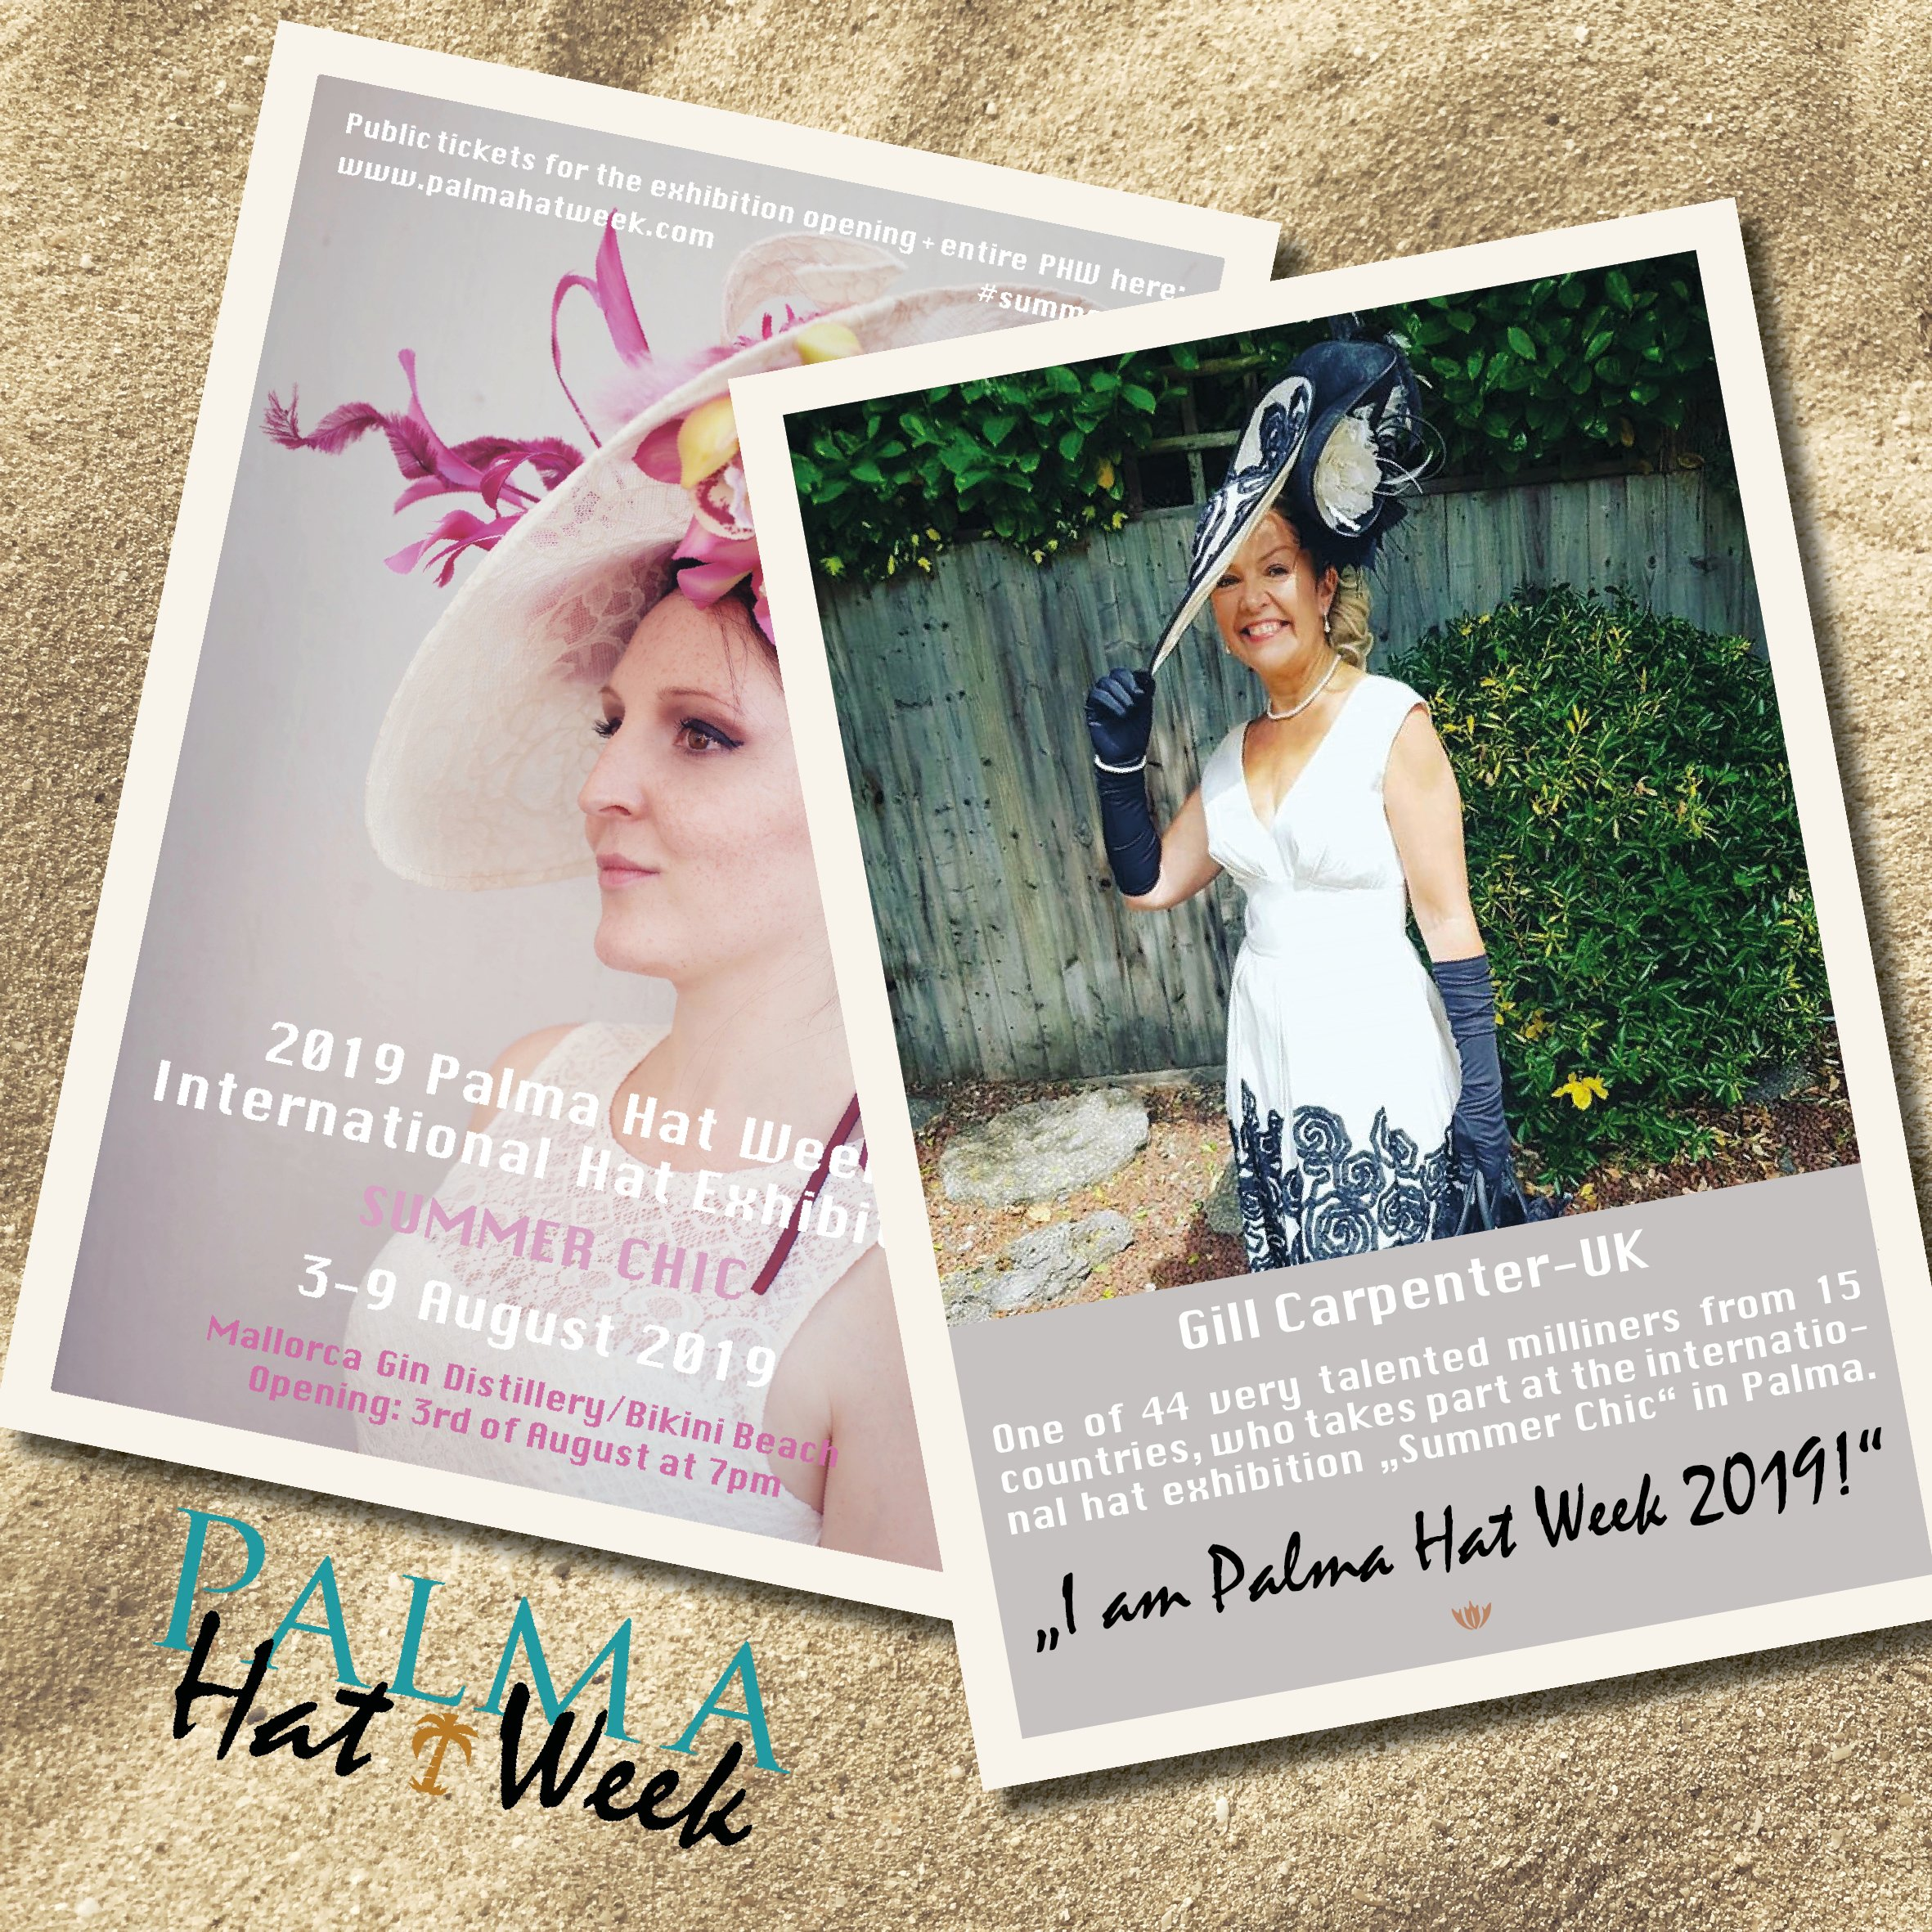 I am Palma Hatweek_Gill Carpenter-UK